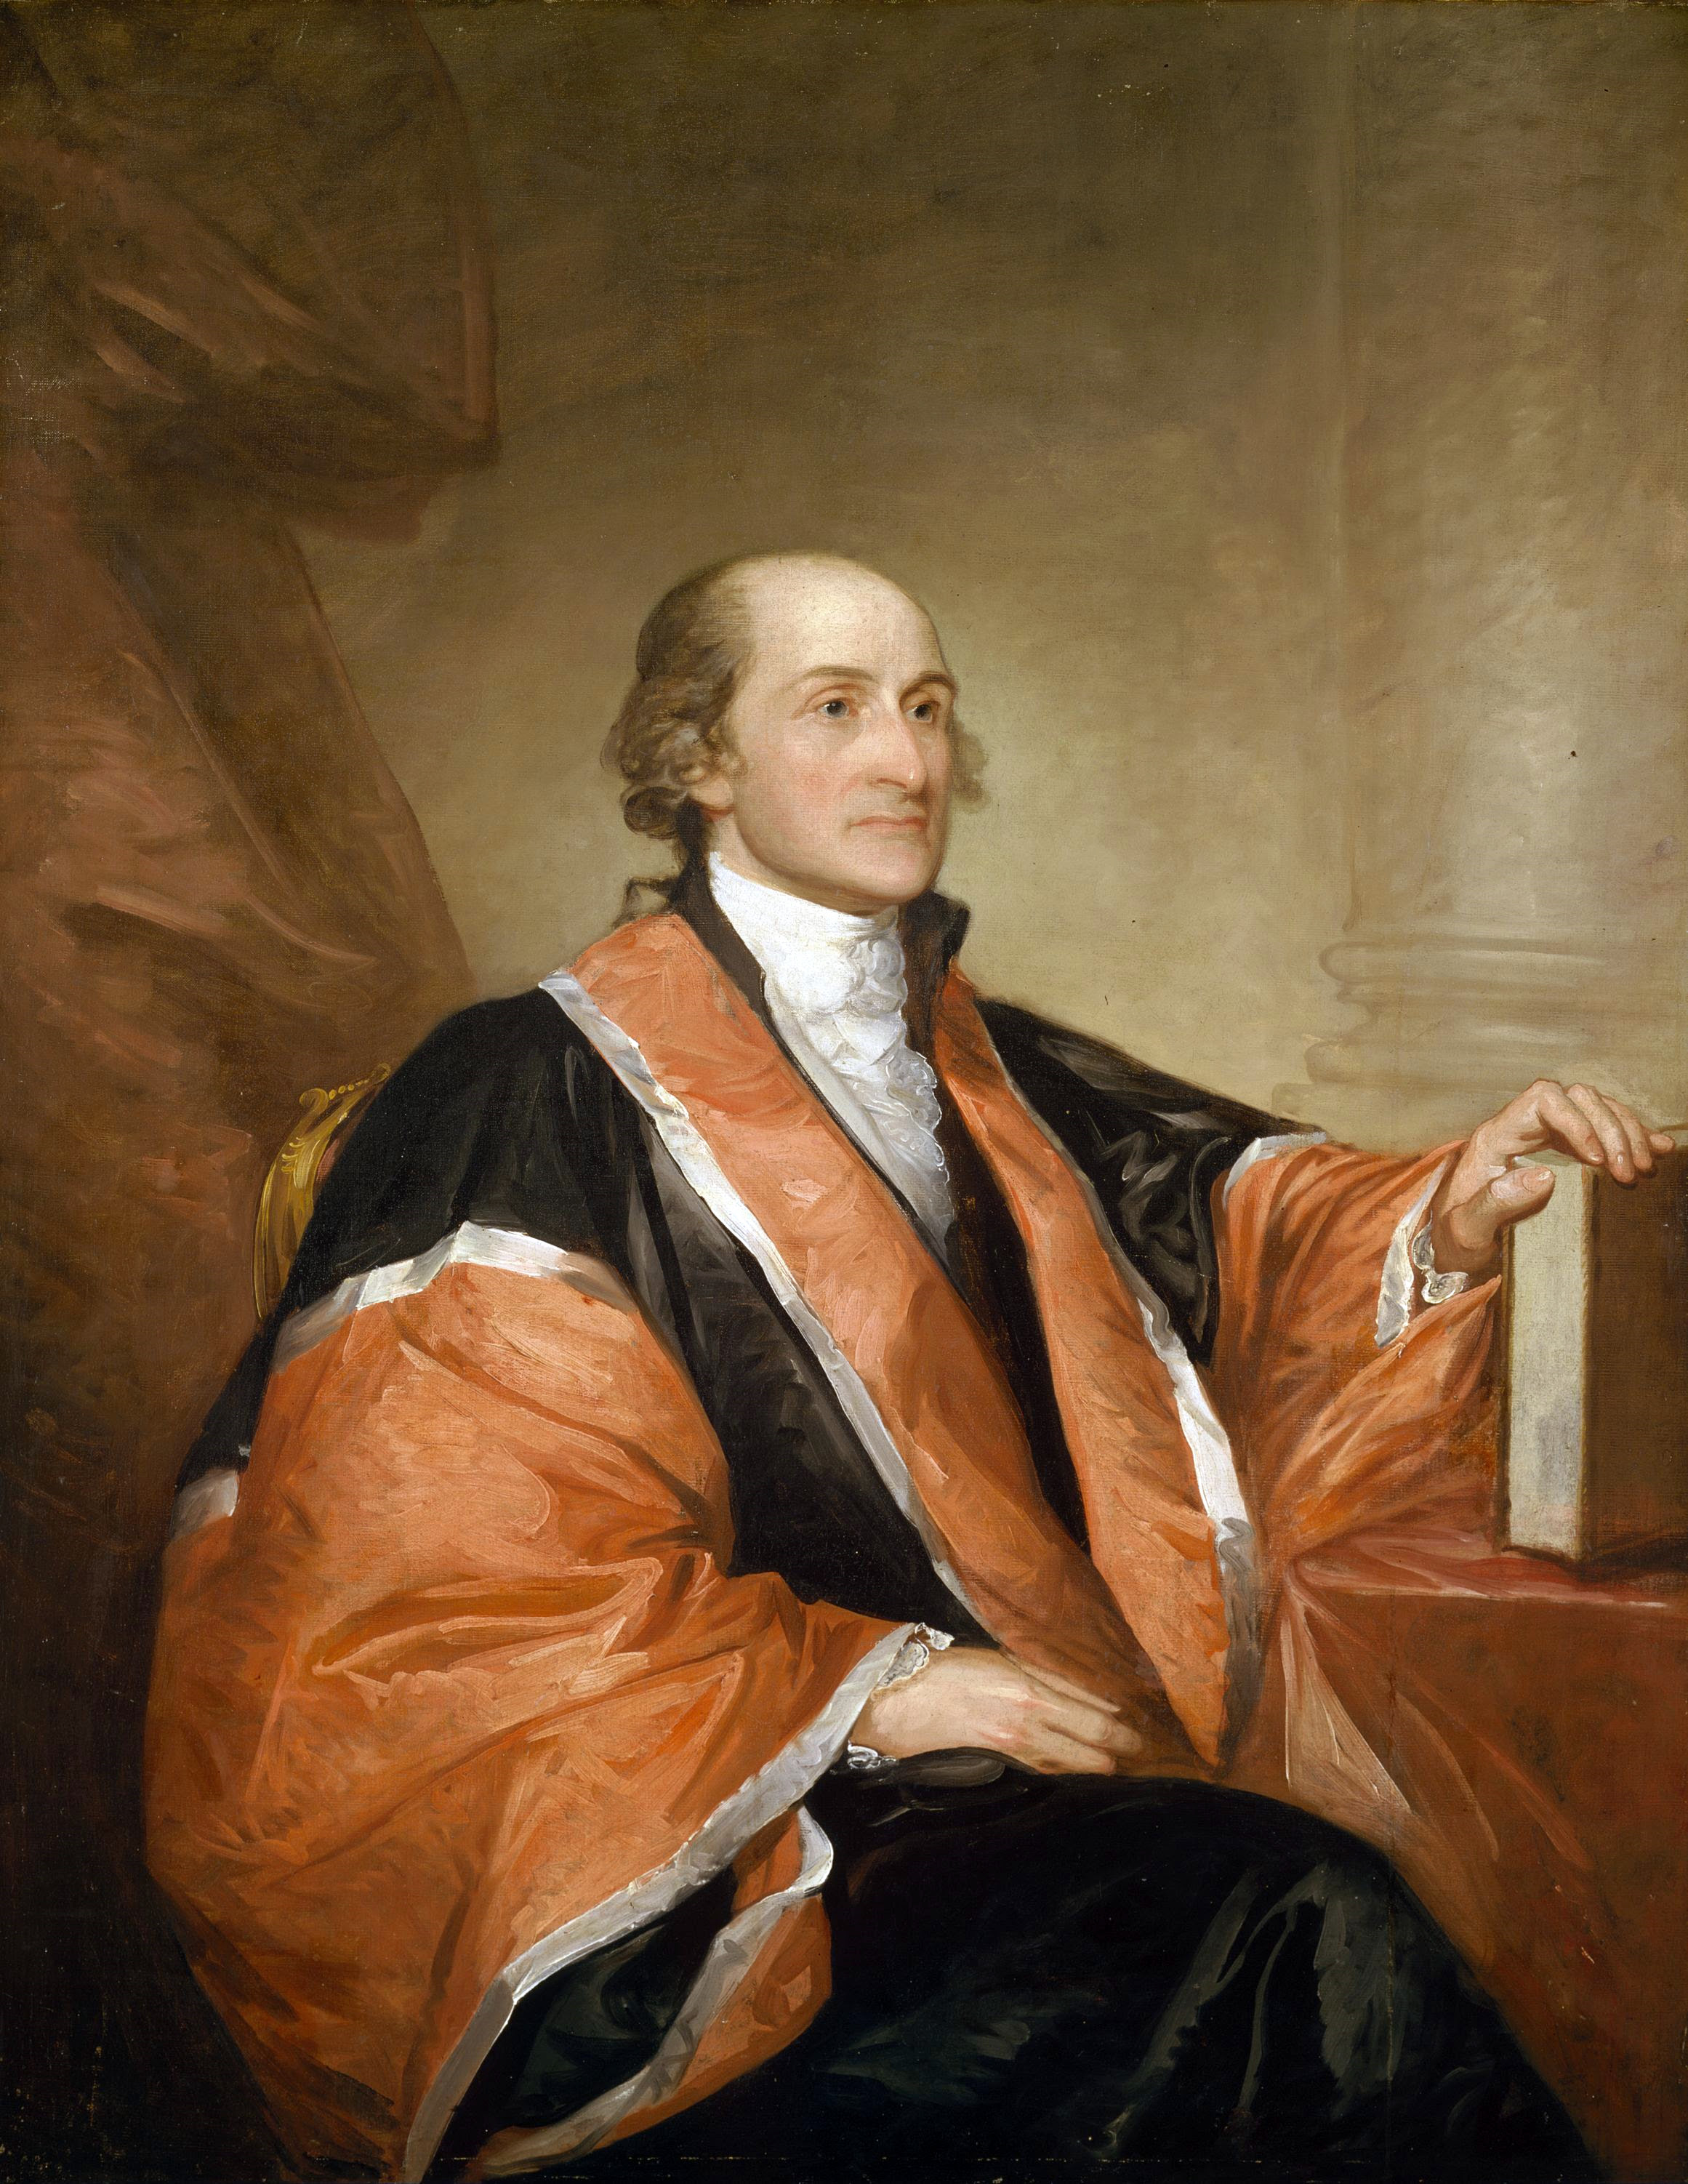 U.S. History: Papers of John Jay Added to Founders Online